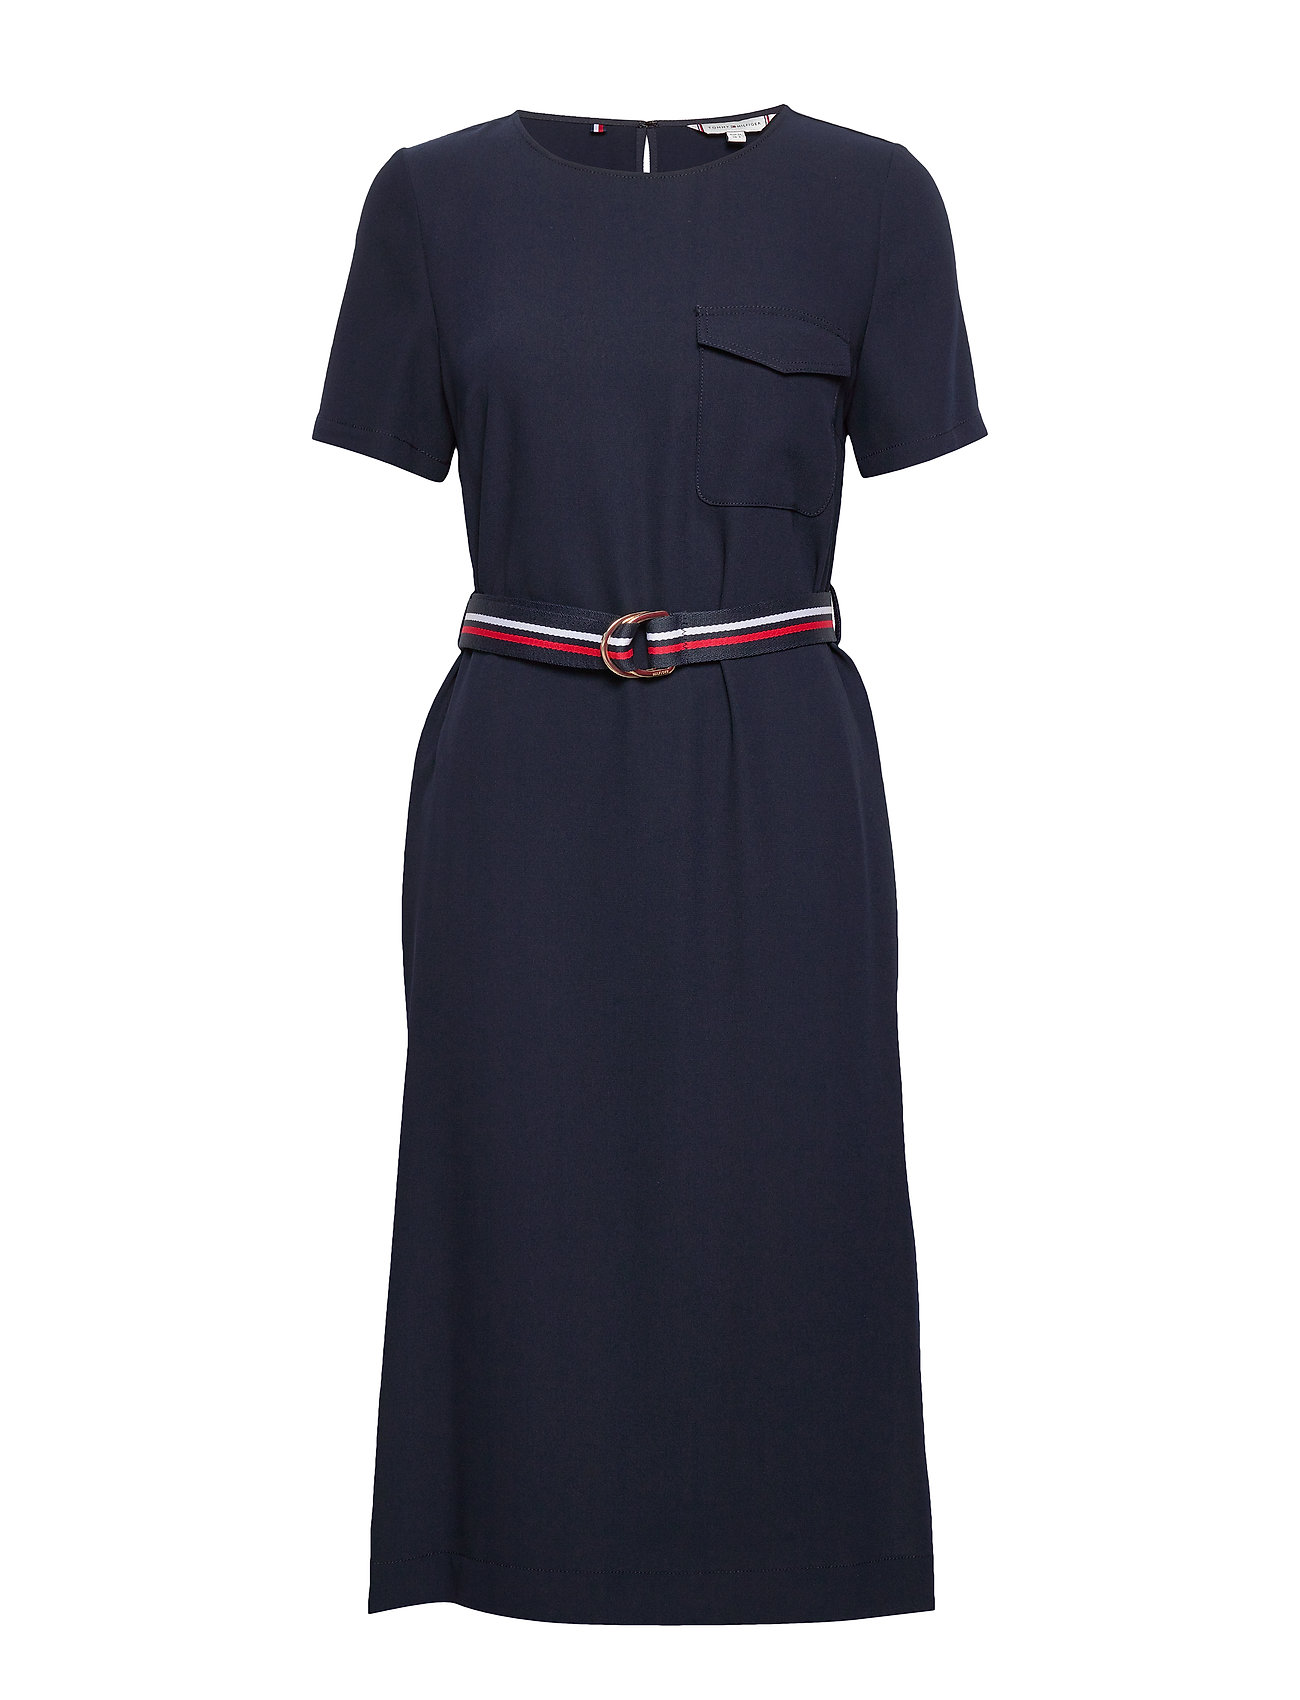 Tommy Hilfiger POLY TWILL SS DRESS - DESERT SKY